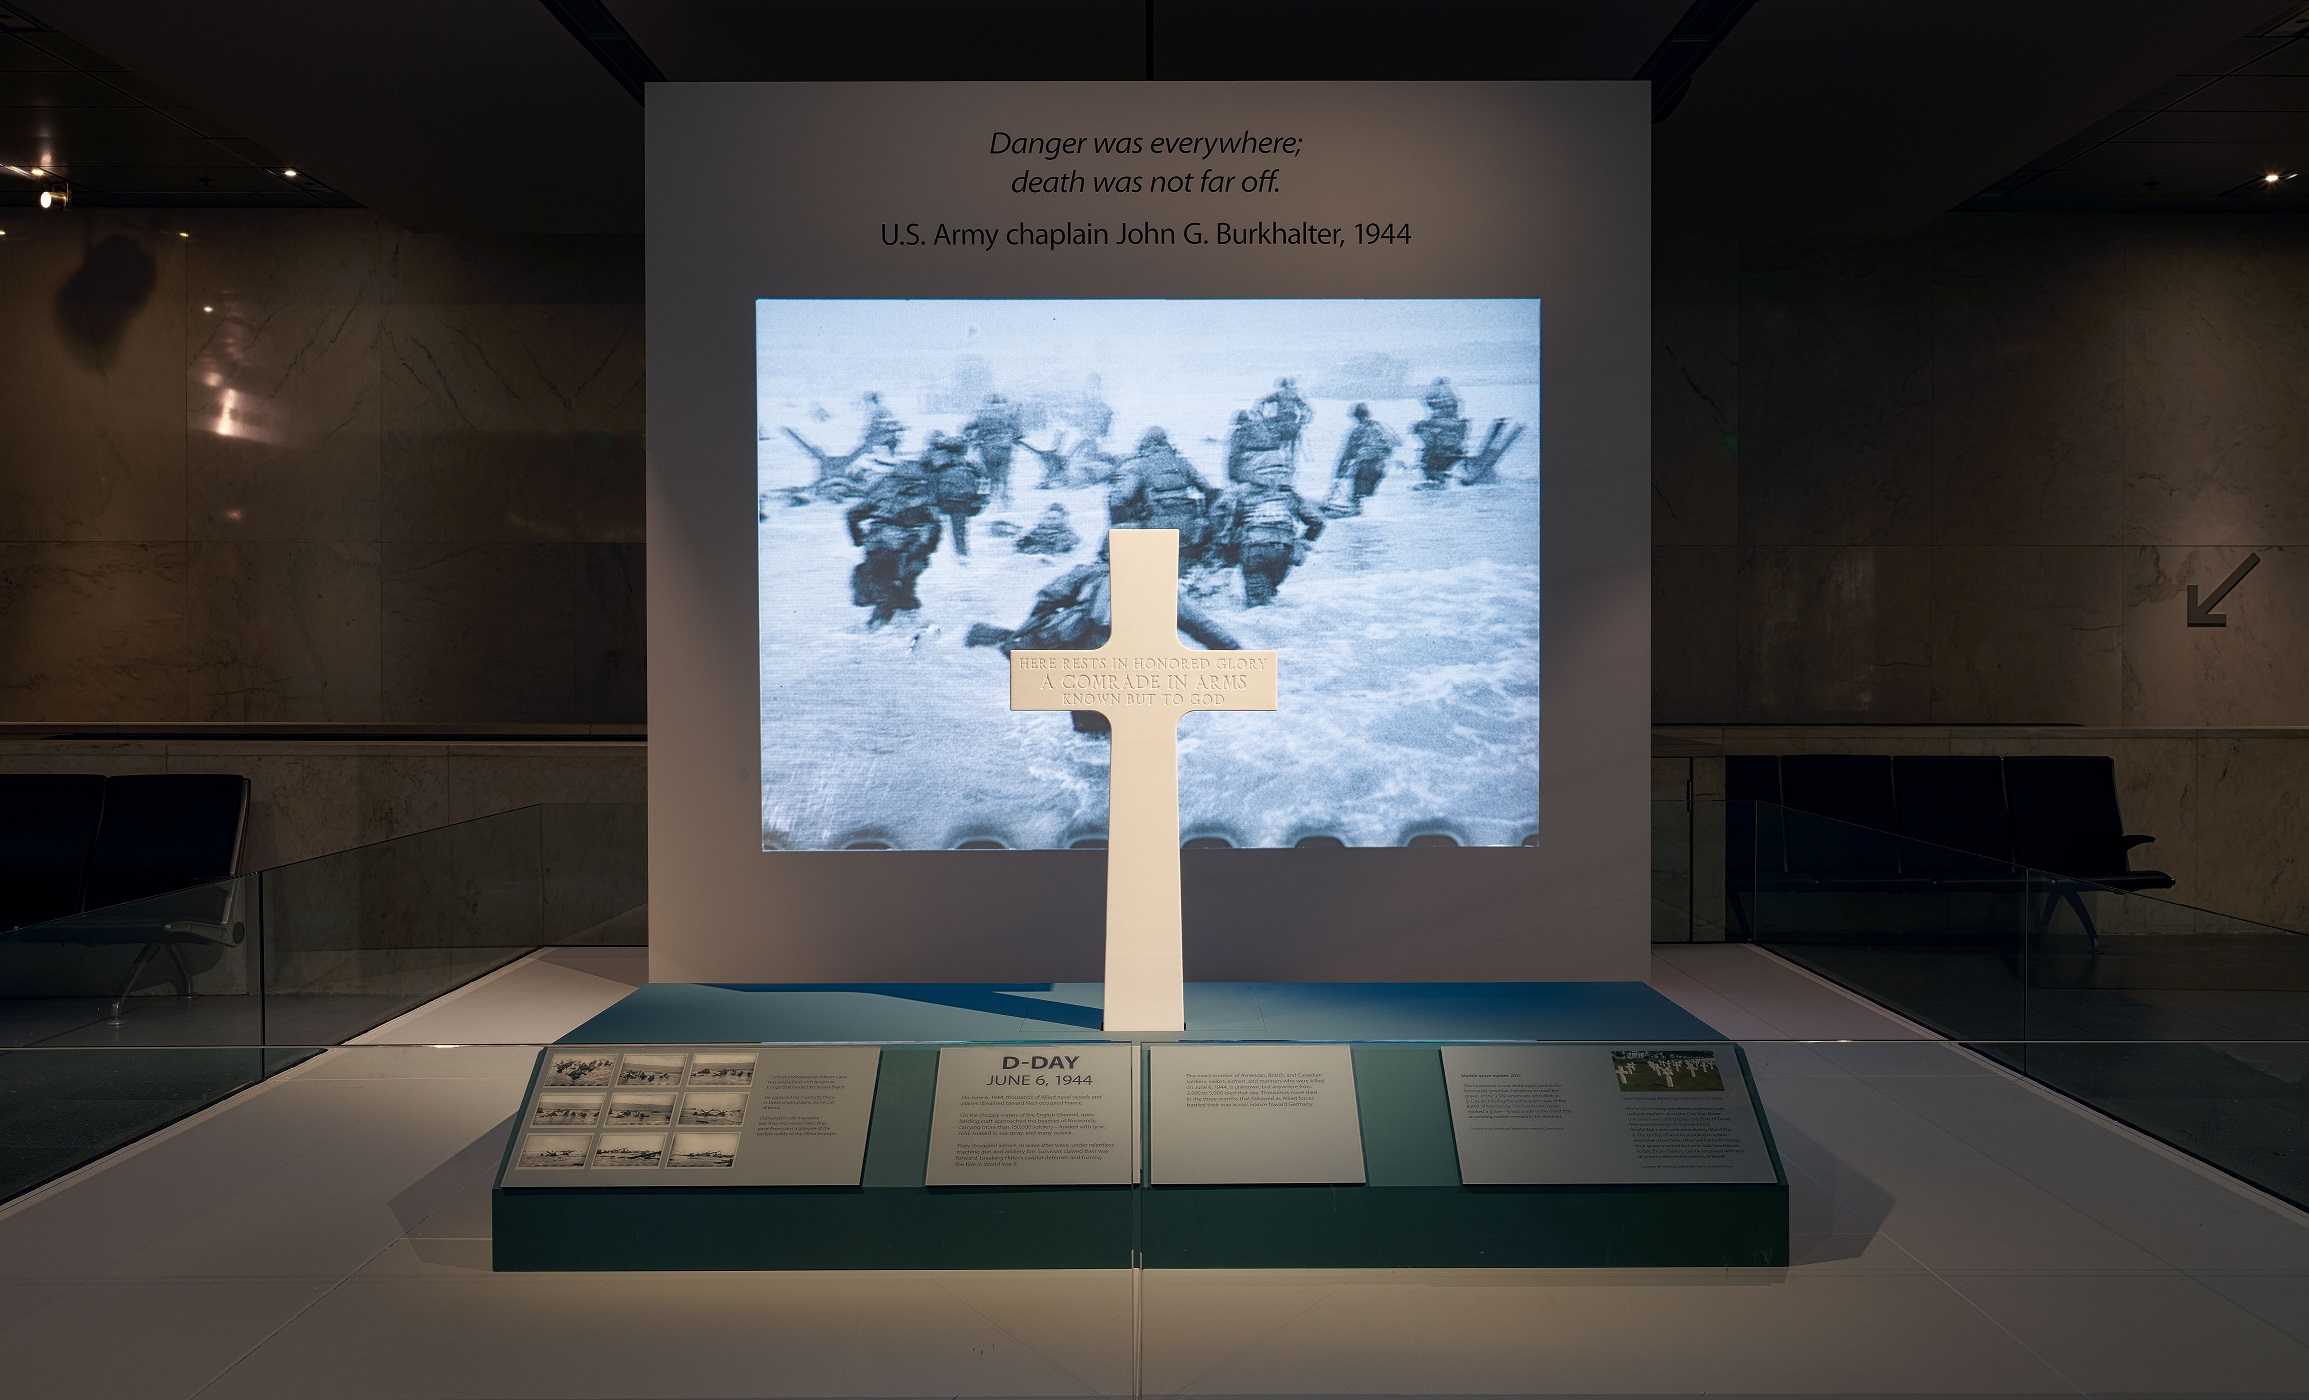 A view of a stone cross sitting on a platform in front of a projected image with text above it in a darkened space.